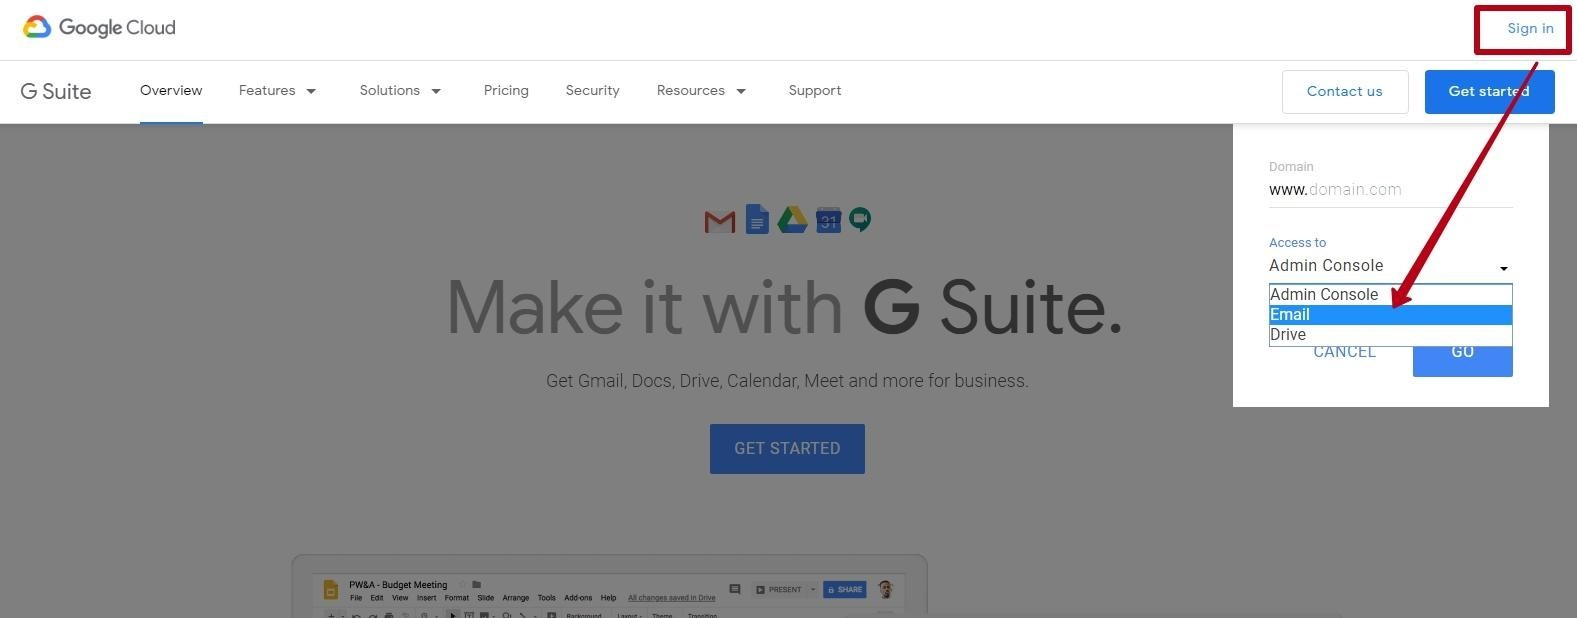 Logging in to the G Suite adminconsole